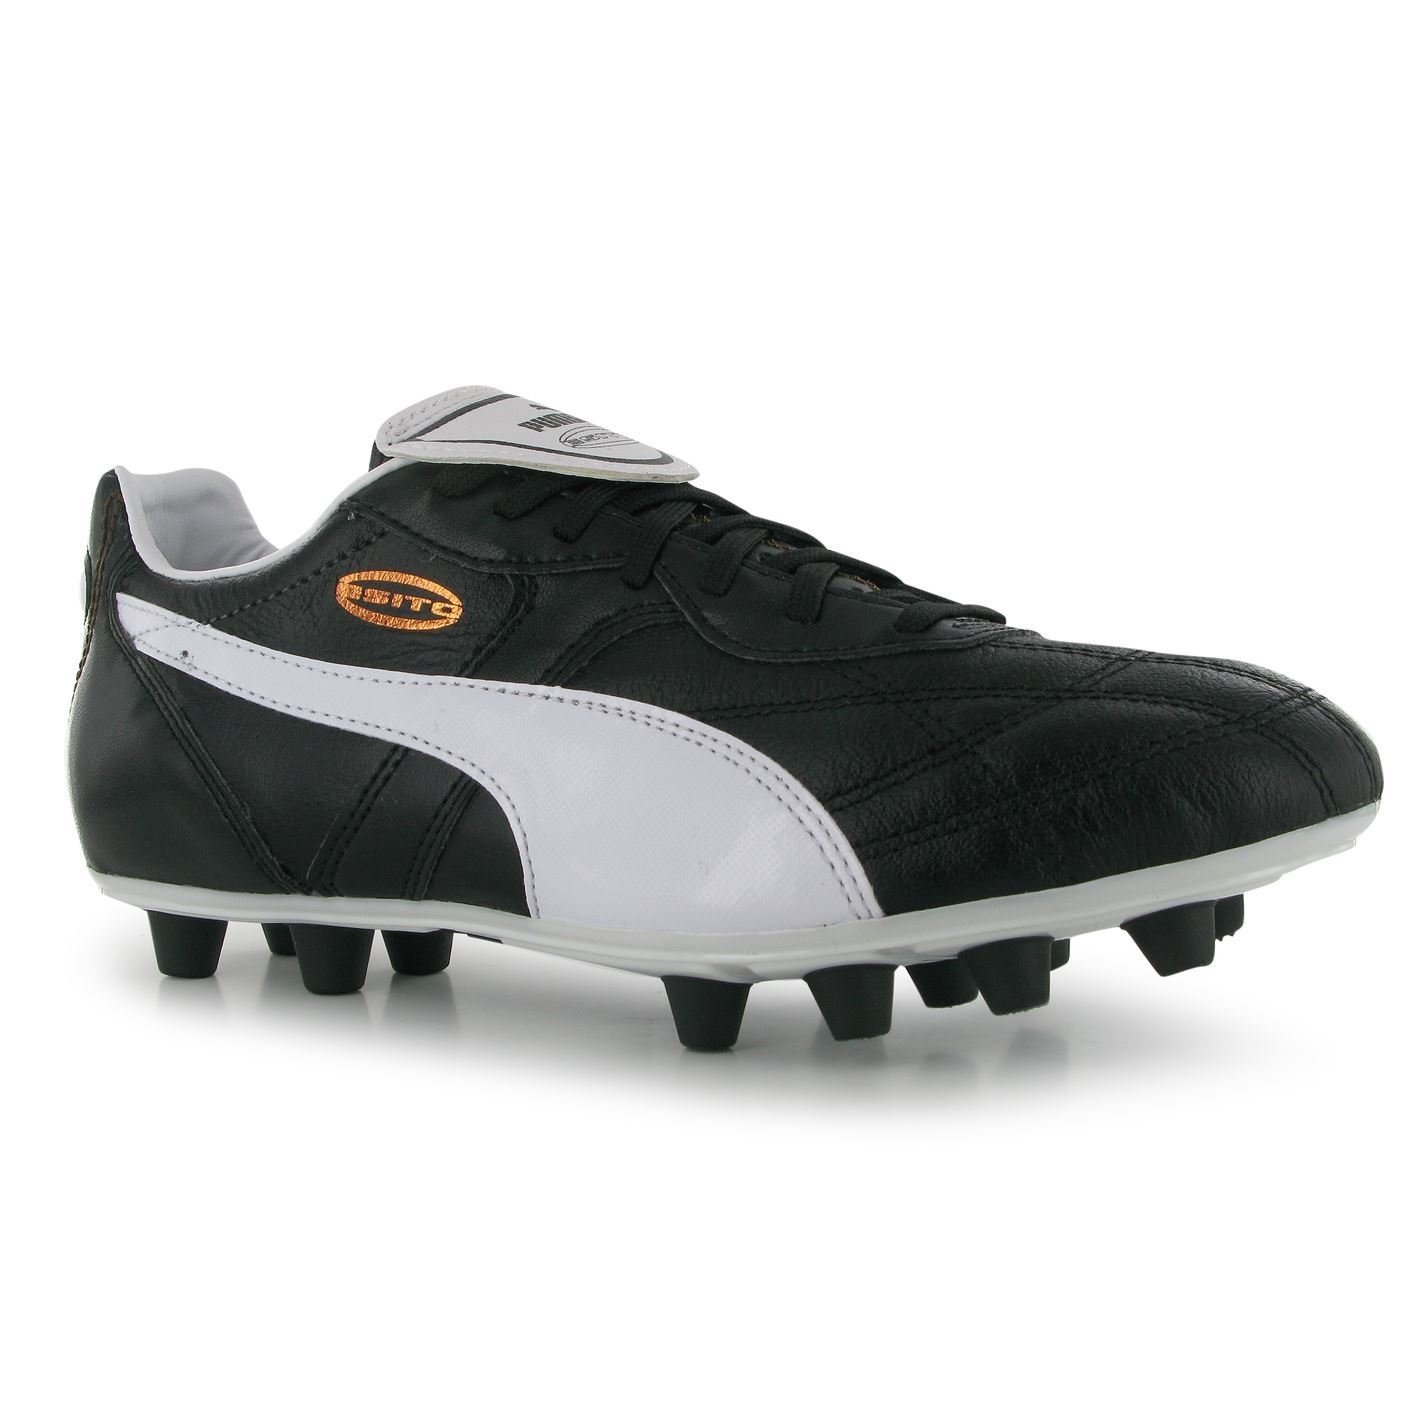 Amazoncom  Puma Esito Classic FG Firm Ground Football Boots Mens  BlackWhite Soccer Cleats  Sports  Outdoors